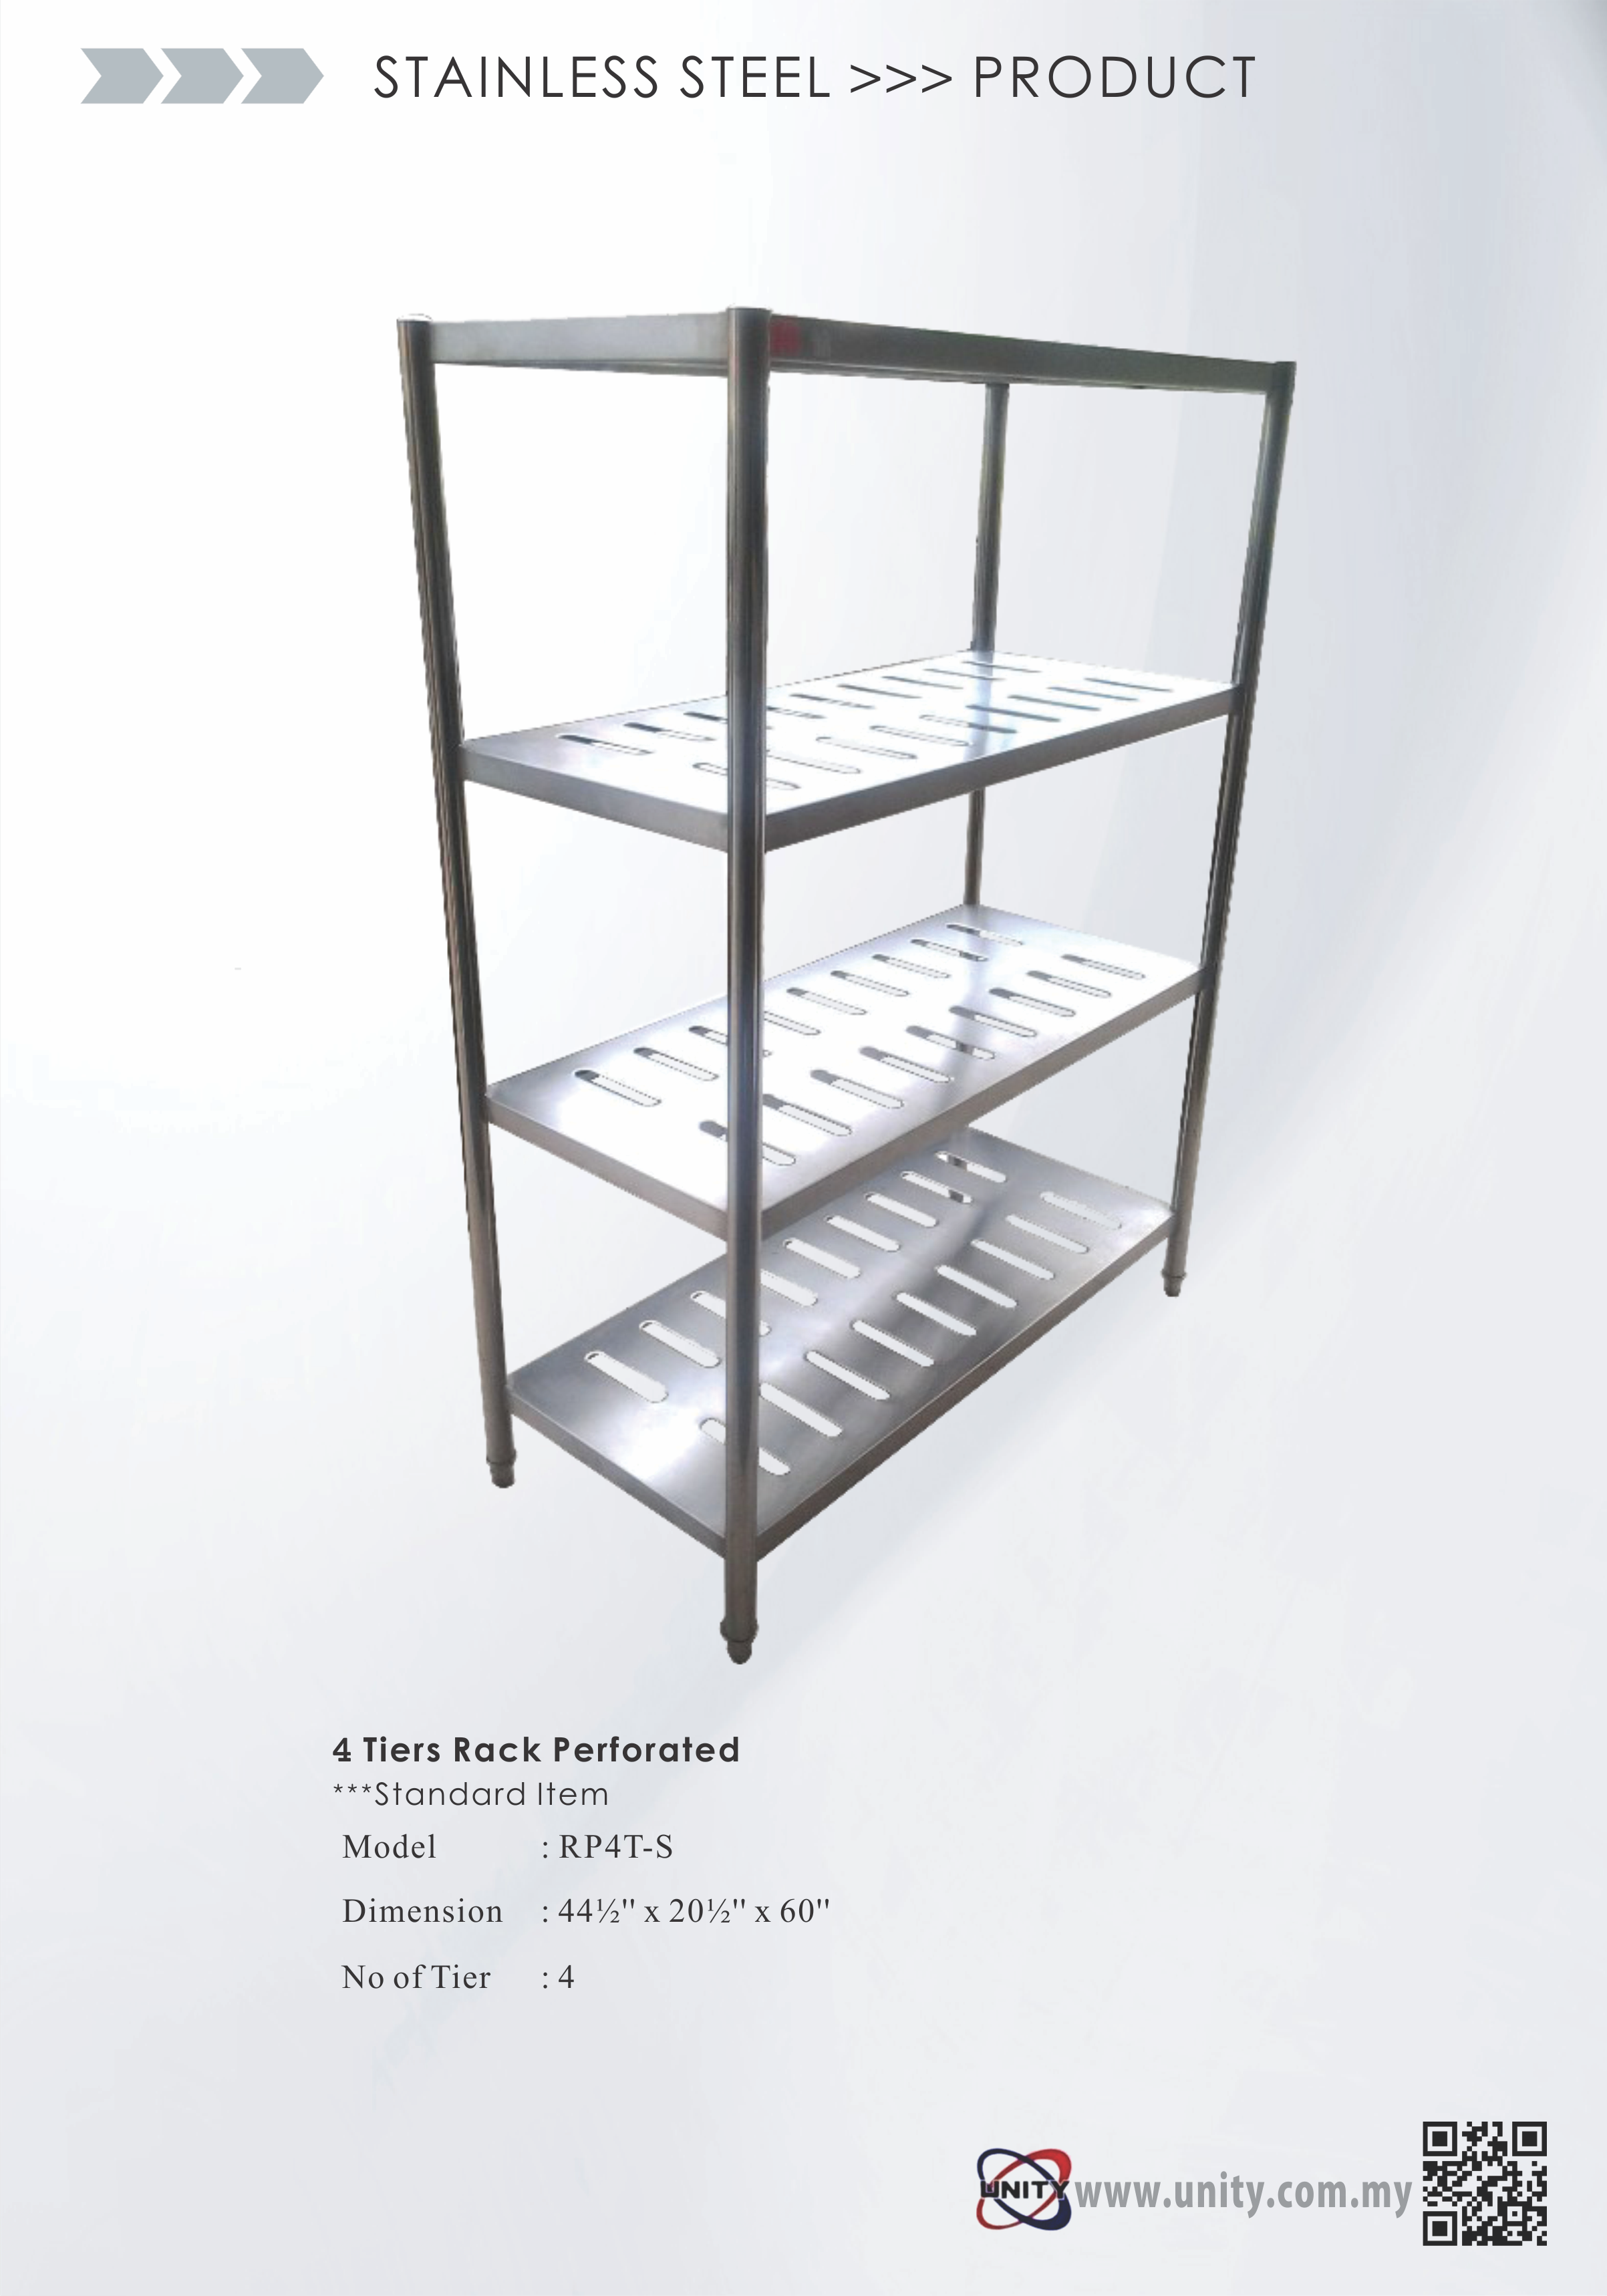 4 Tier Perforated Rack